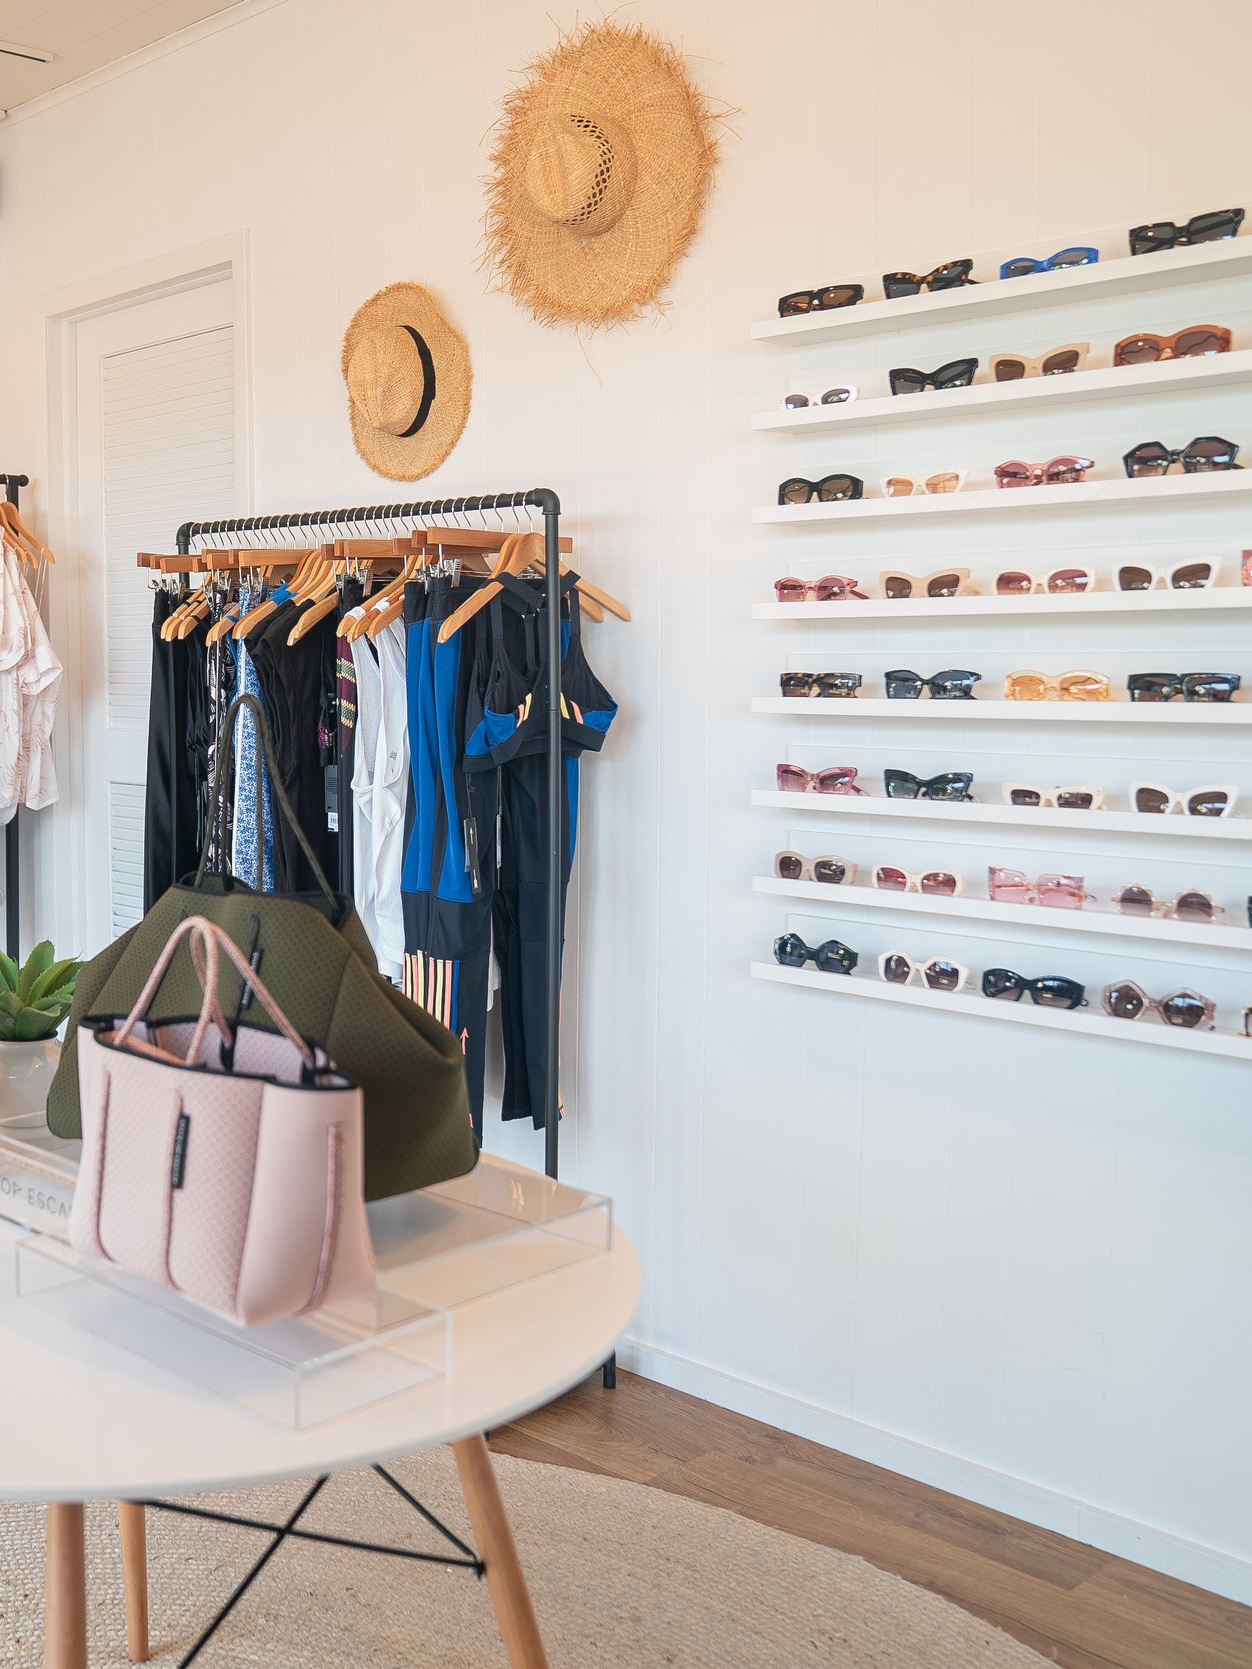 """We had such a wonderful response from the first Beach Collective pop-up, that we decided to partner with the AFC and work together to put these Australian brands on the map"" - Andrew Stone, Bluestone Lane Brand VP"